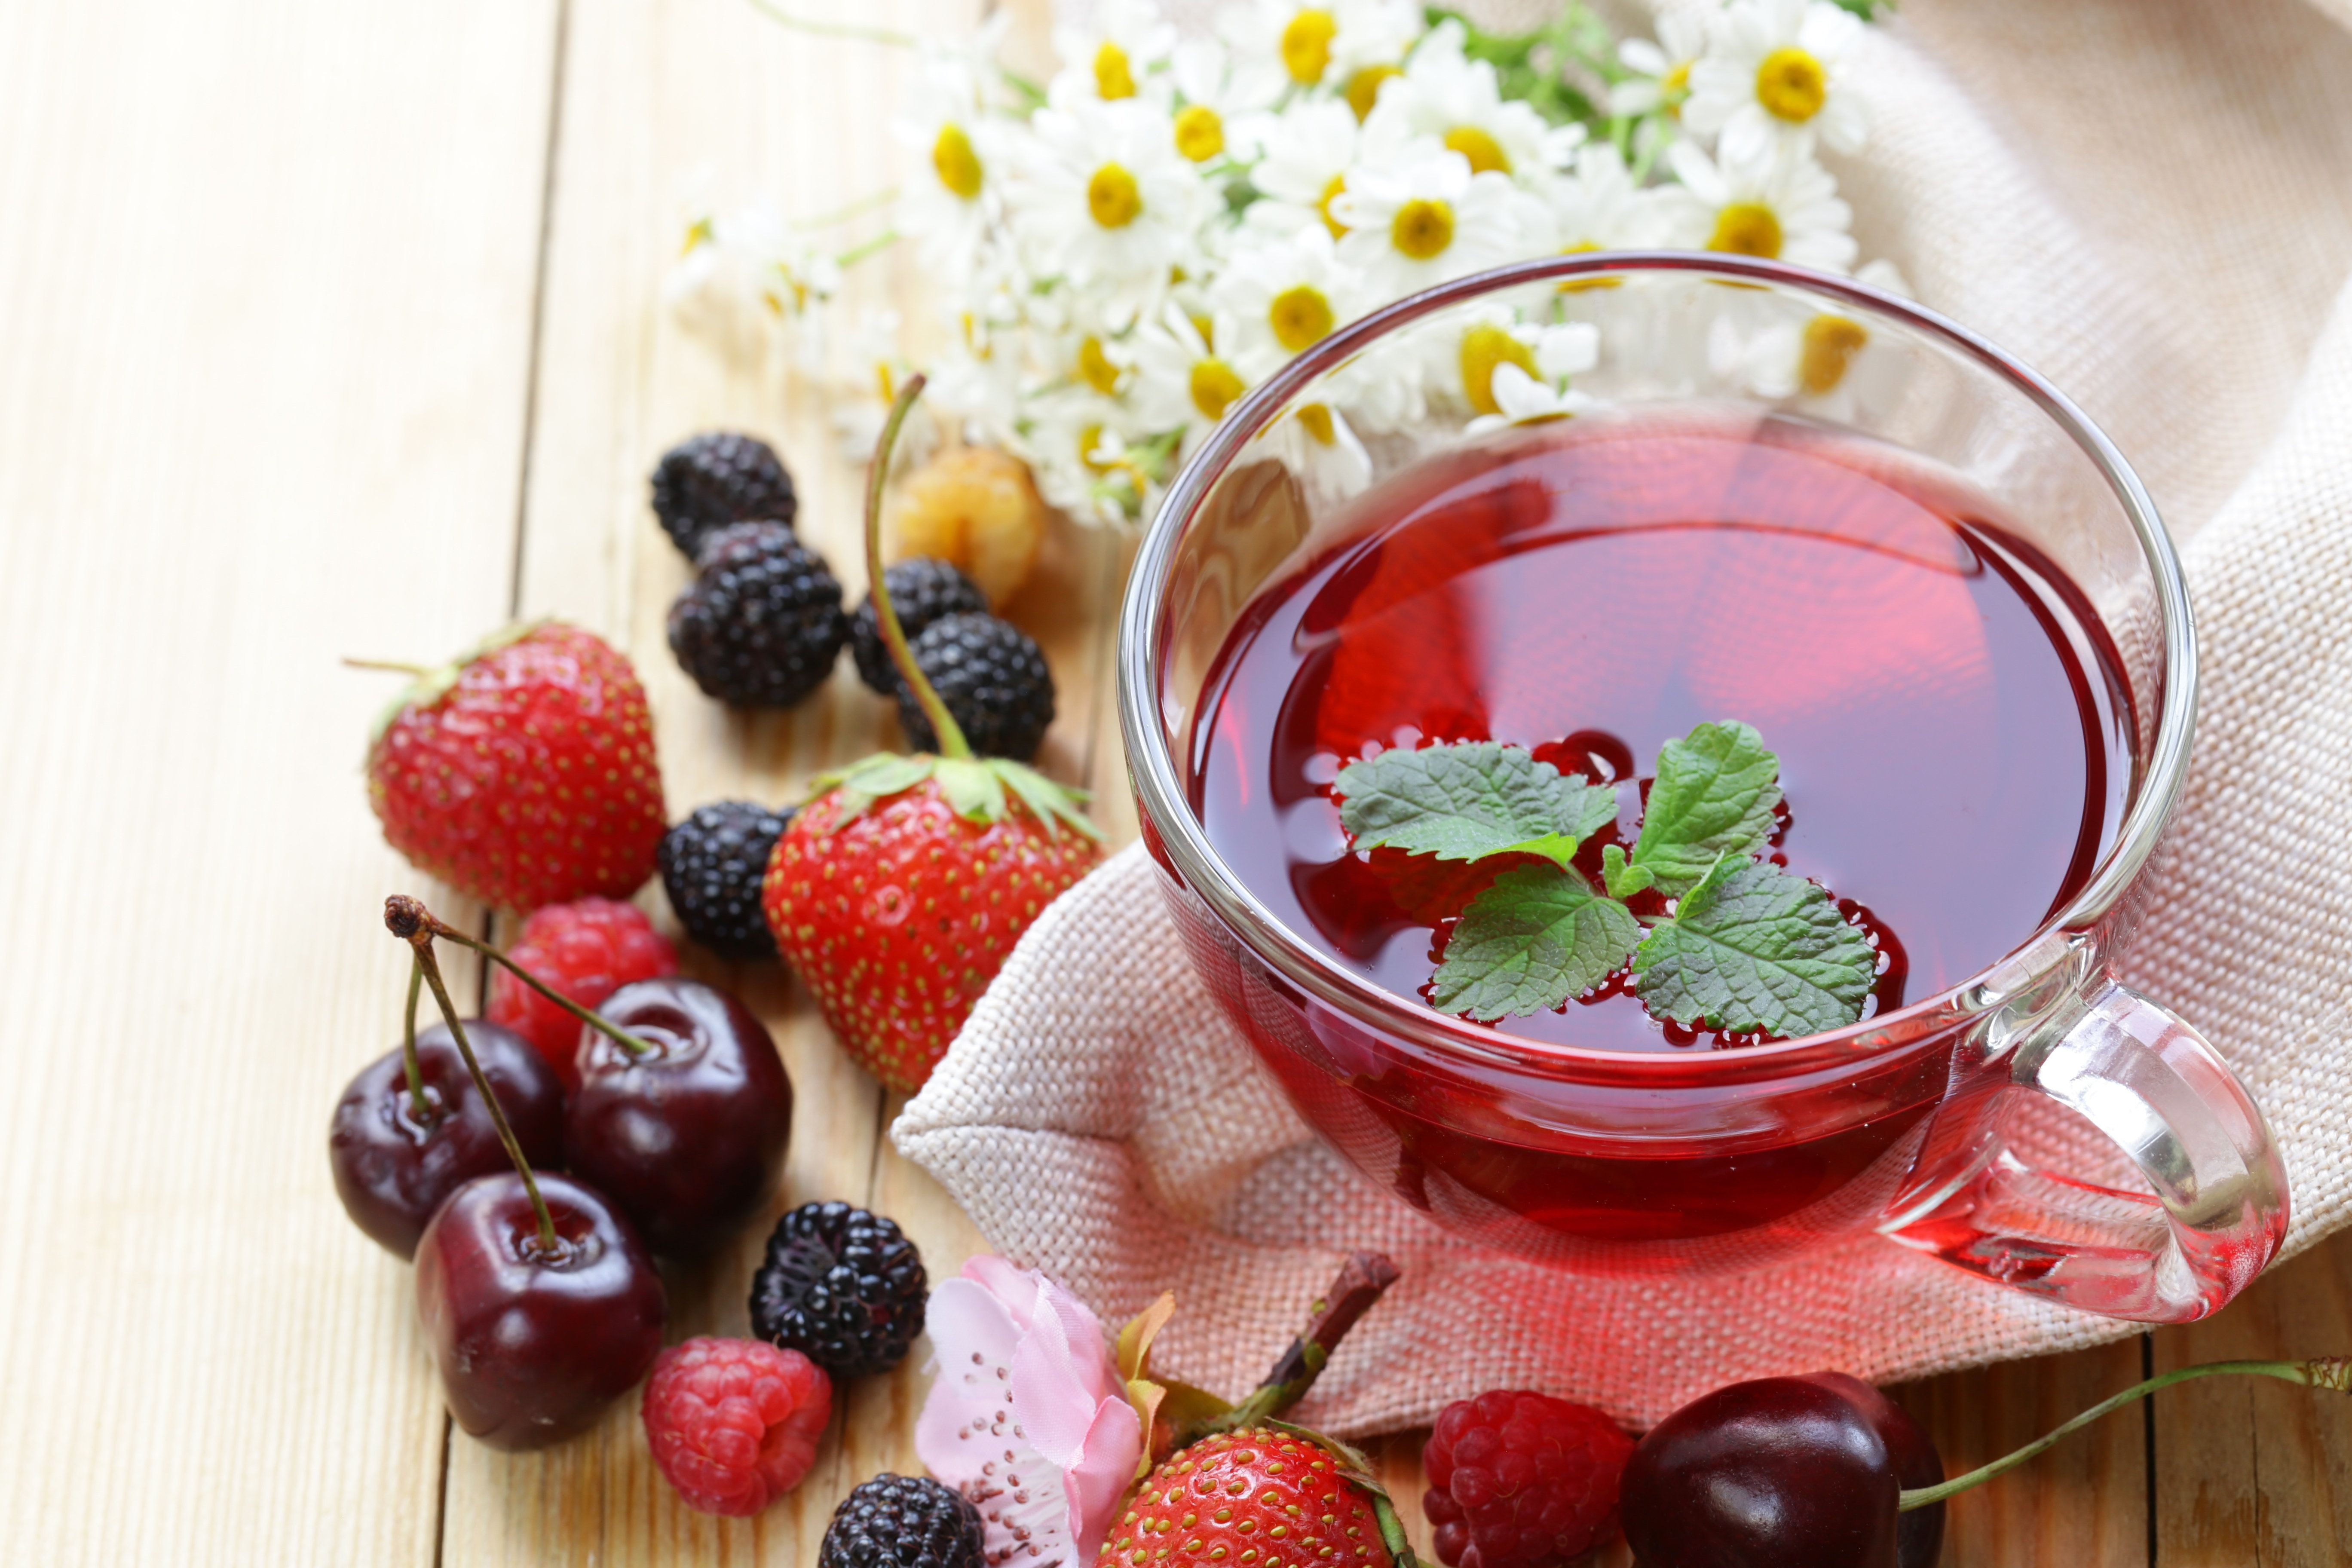 Drinking Fruit Tea Between Meals Increases Chance Of Tooth